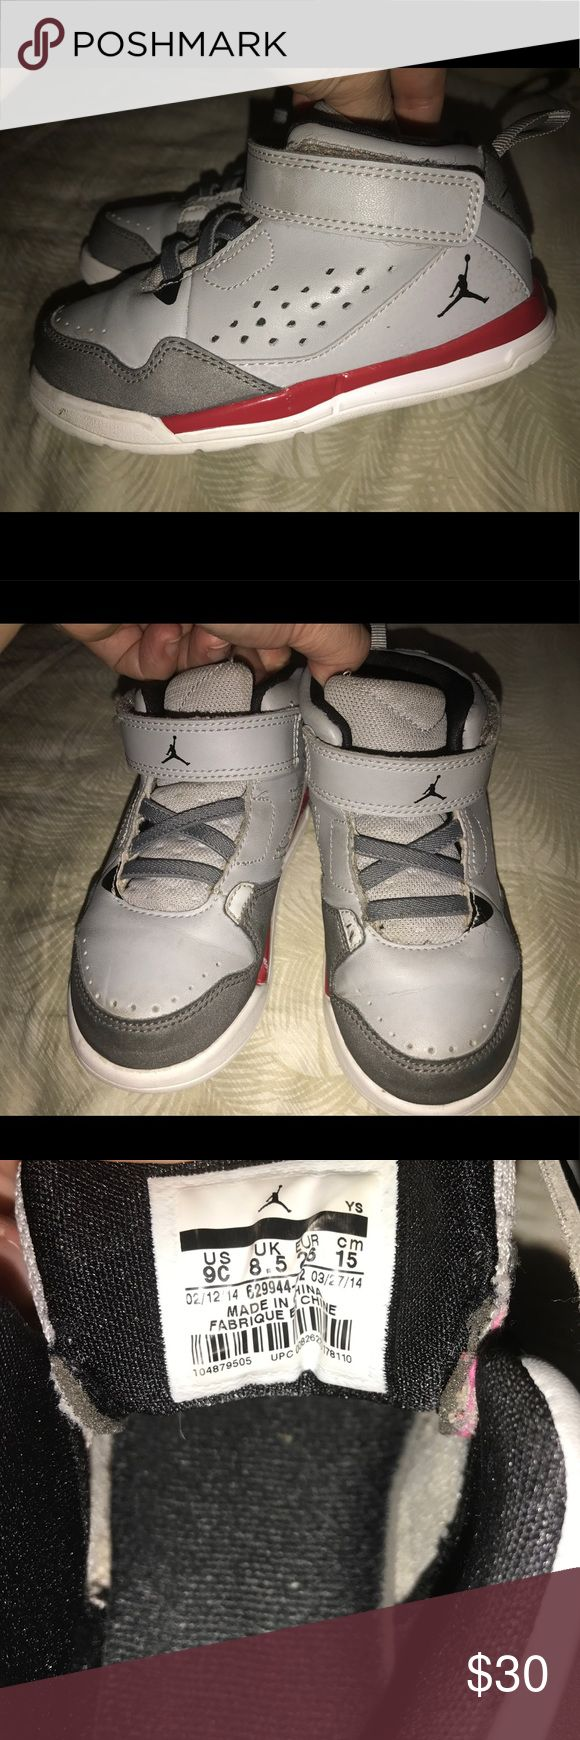 Toddler Jordan Flight shoes Size 9c Cute gently used Jordan Flights, Toddler Size 9c, from a pet free smoke free home. Jordan Shoes Sneakers